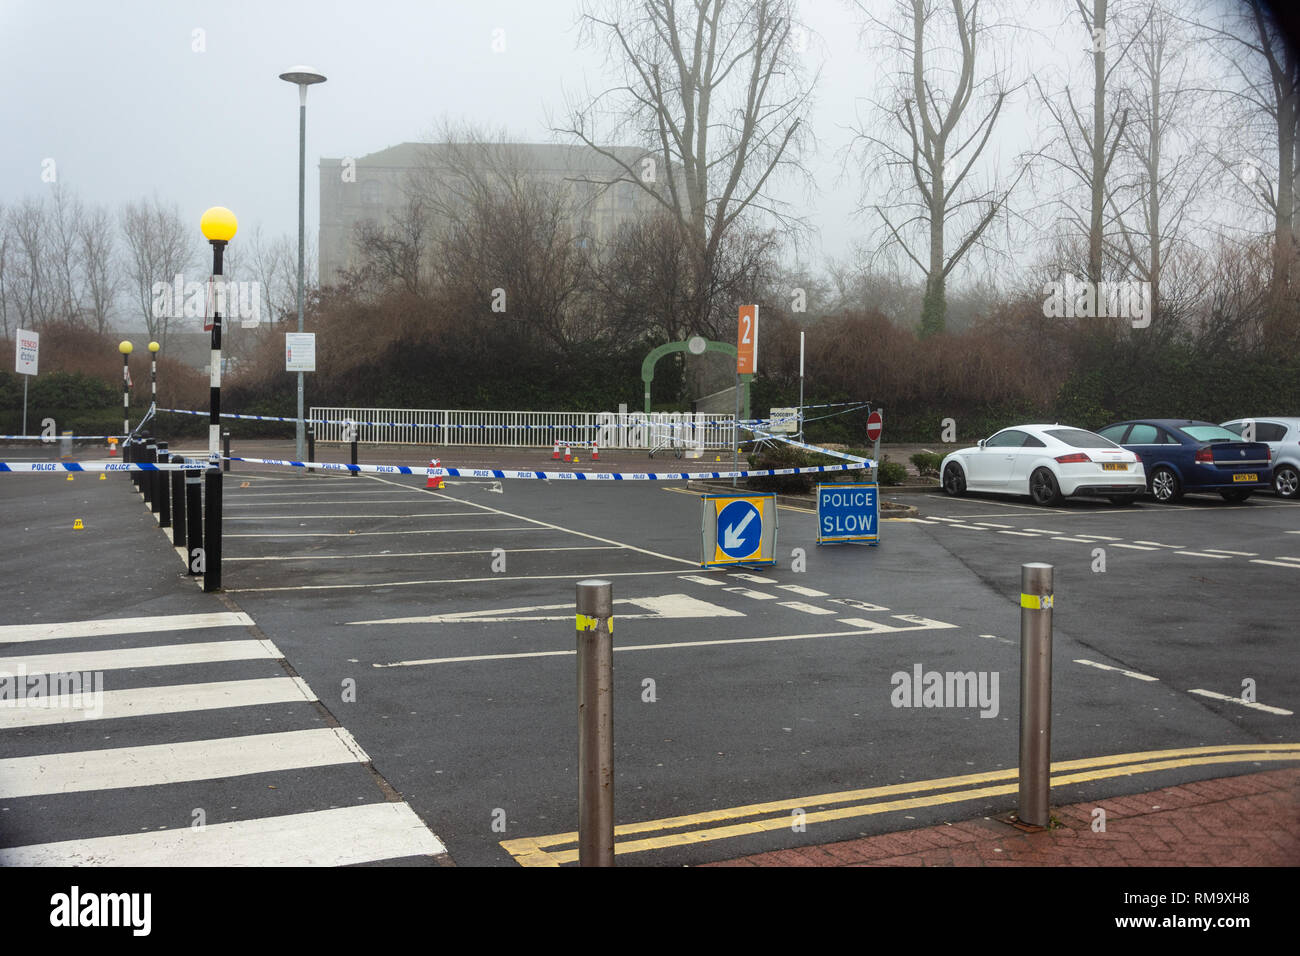 Trowbridge, Wiltshire, UK. 14th February 2019. Overnight there was a double stabbing near the Tesco Extra store. One victim rumoured to be critical. An overview of the scene from Tesco car park Credit: Starsphinx/Alamy Live News Stock Photo